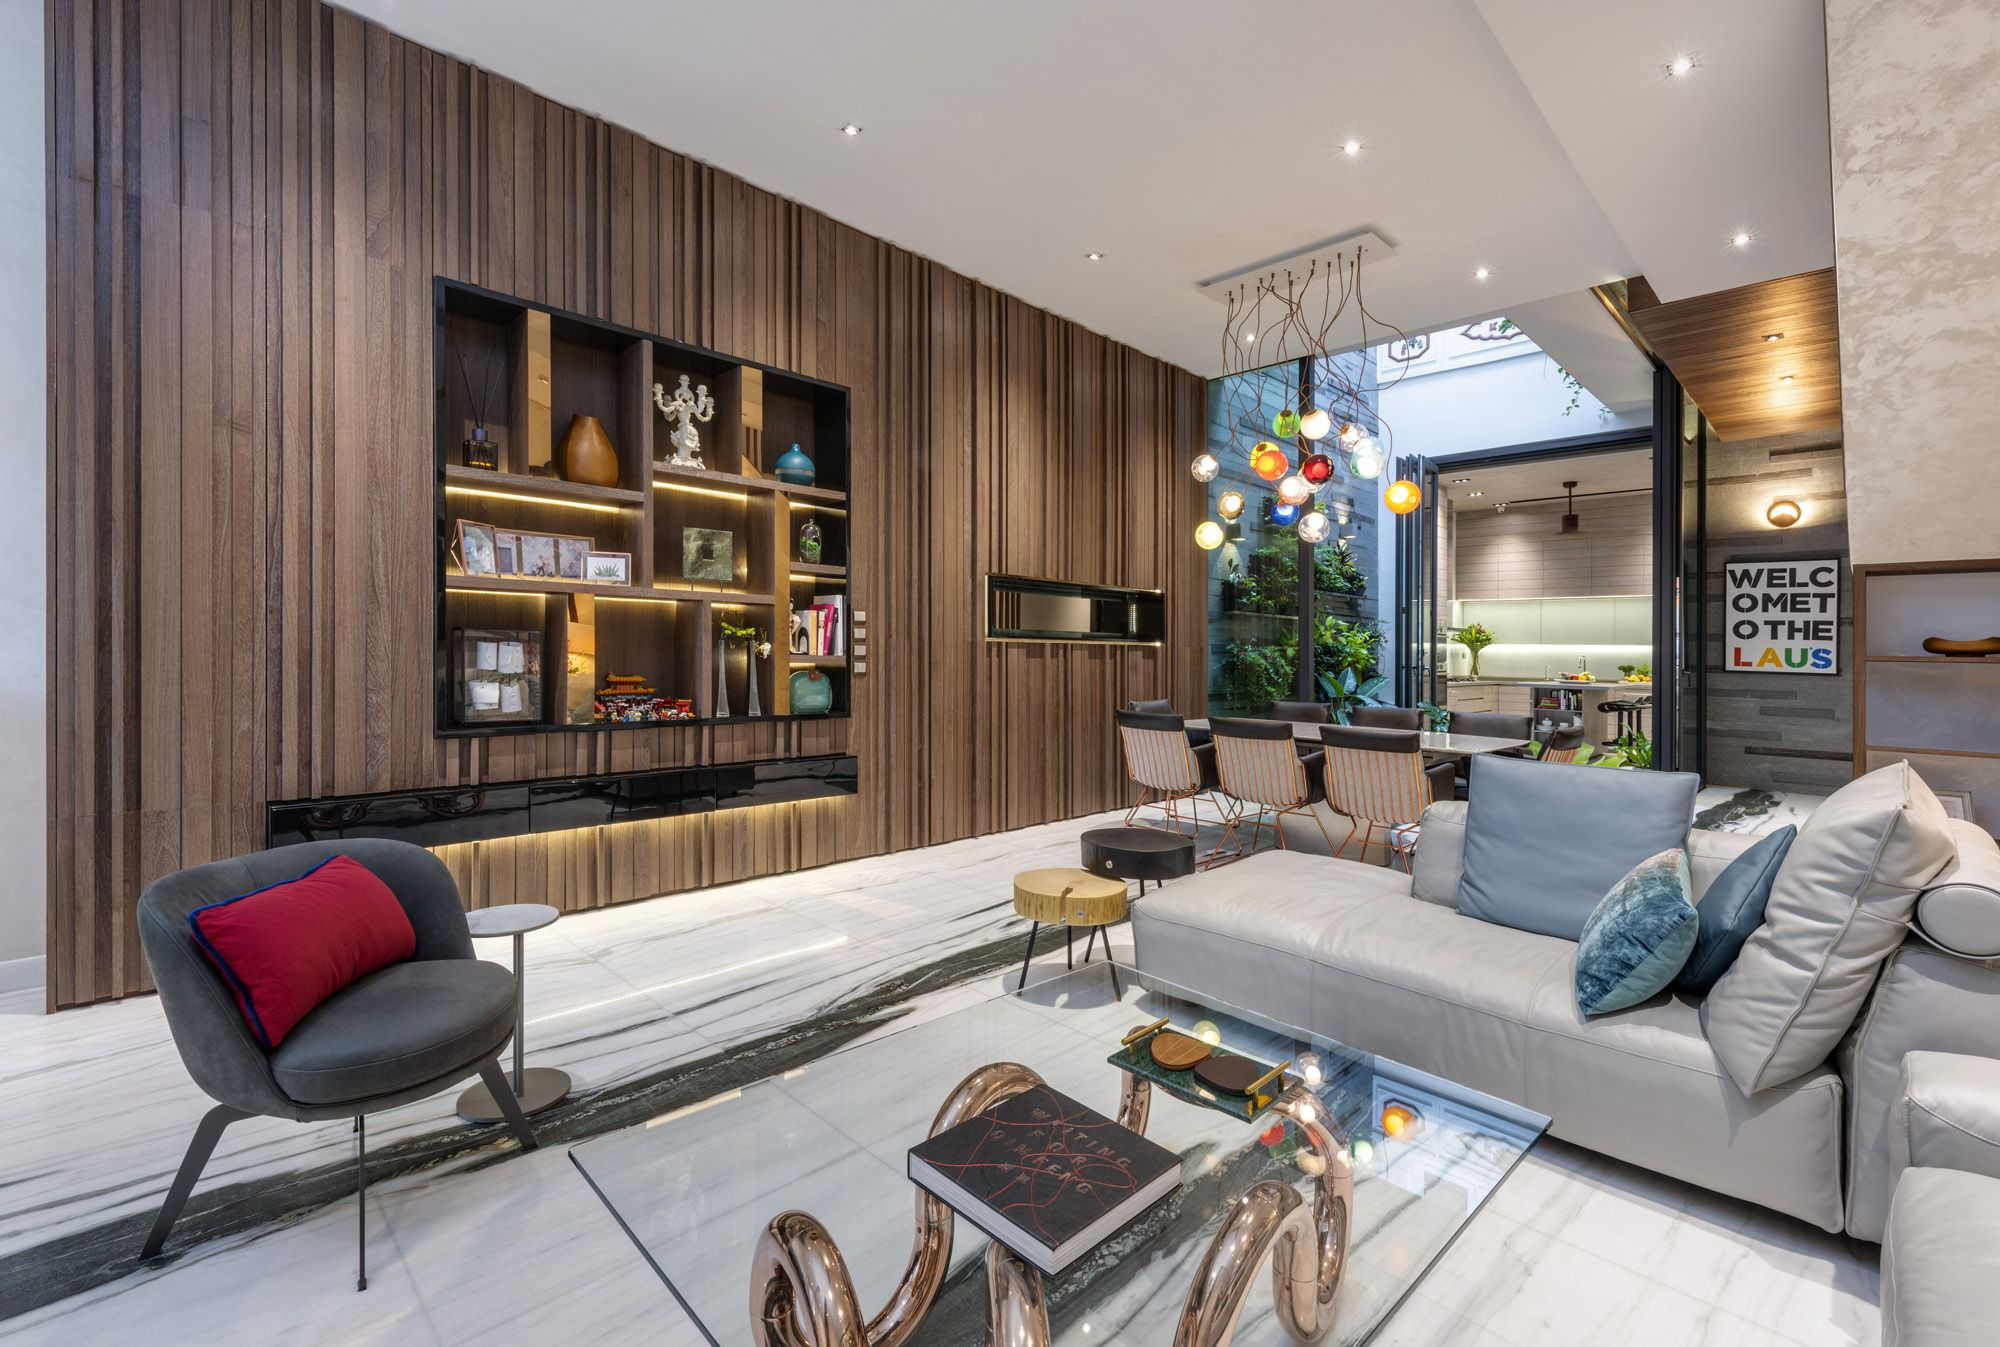 Home Tour: A Peranakan Shophouse in Singapore With a Colourful, Contemporary Interior